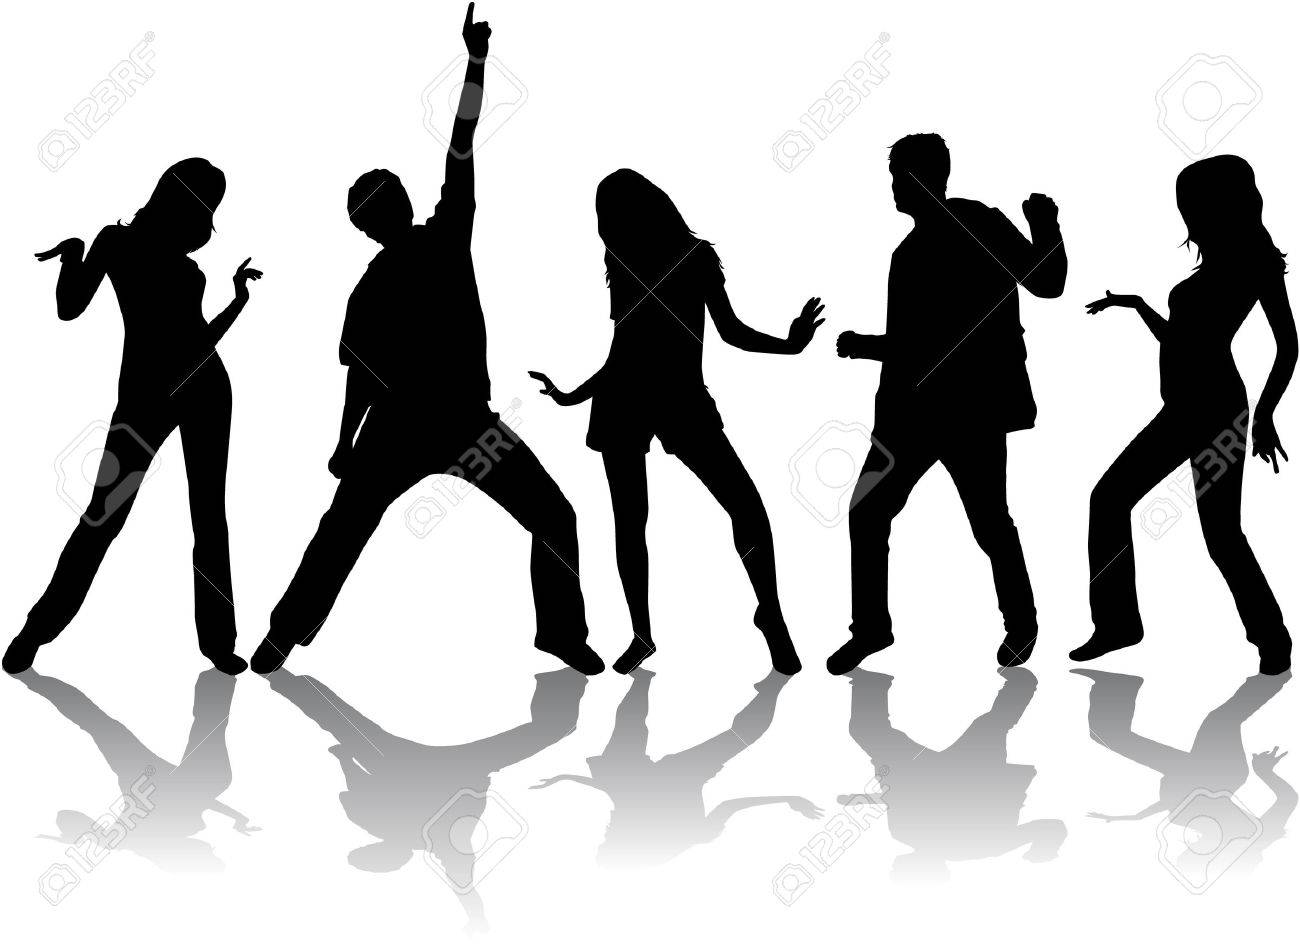 Dancing silhouettes - 35077607